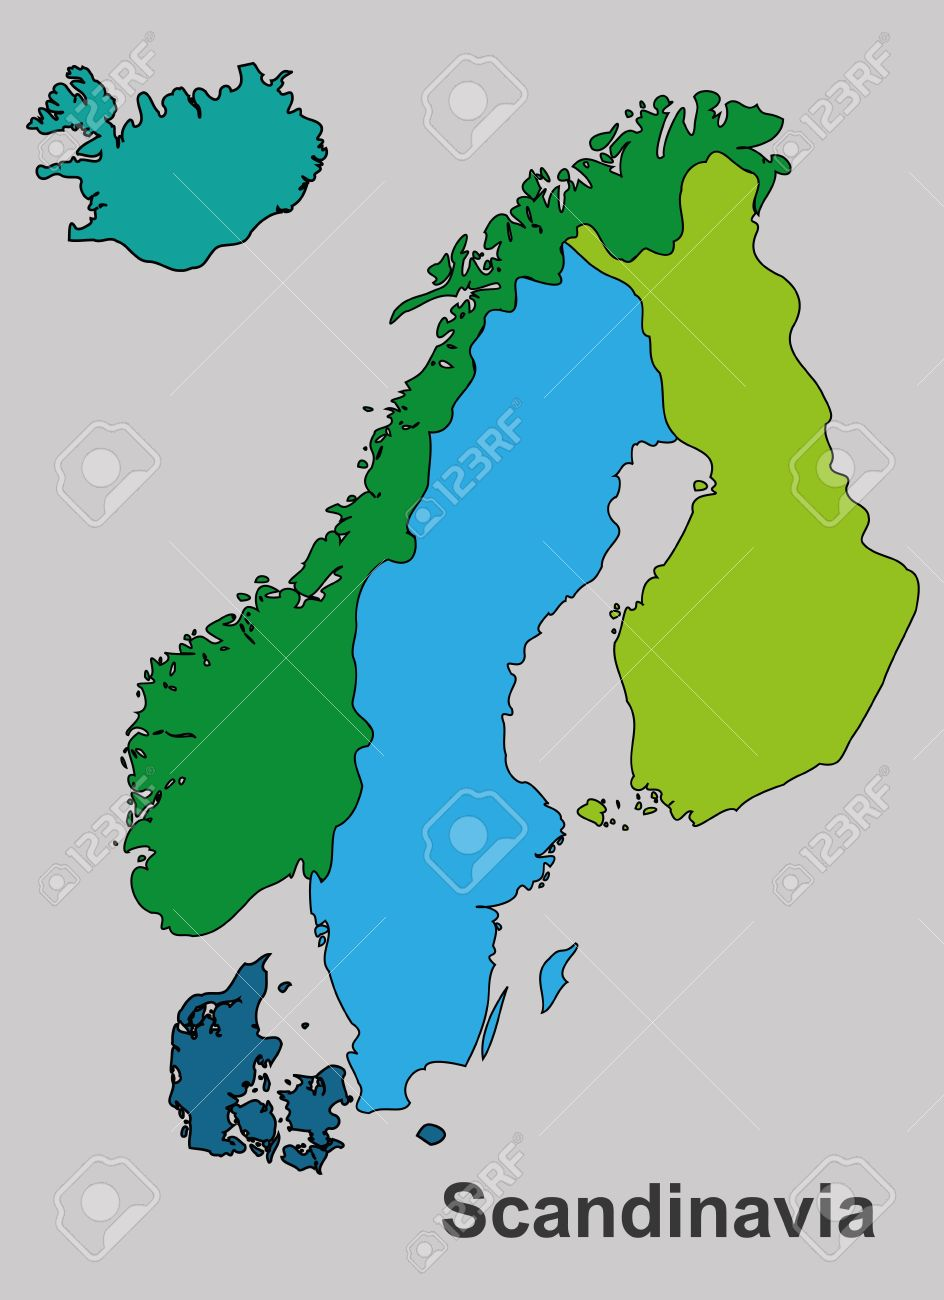 Scandinavia Map In White Background Scandinavia Map Vector Royalty Free Cliparts Vectors And Stock Illustration Image 39468415